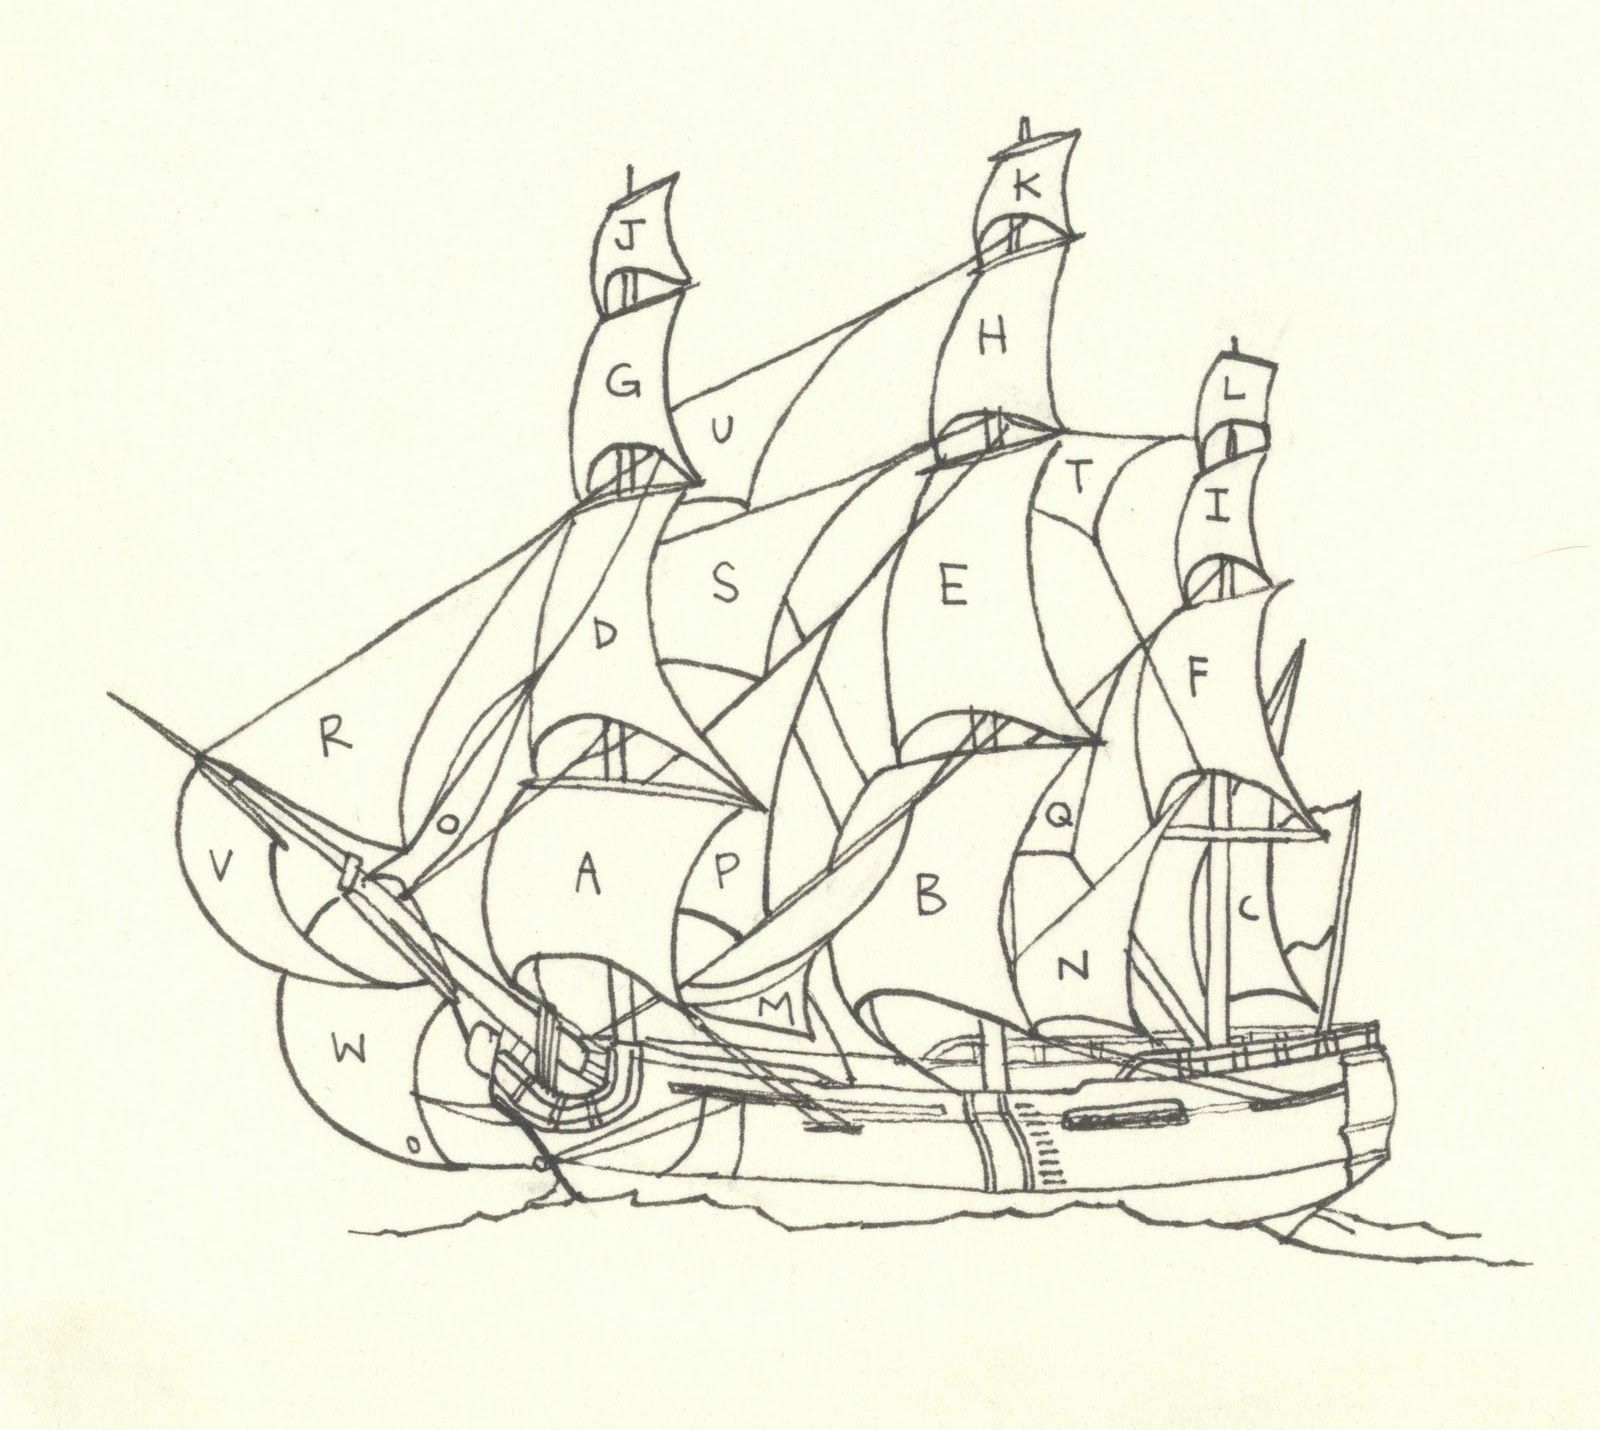 A great diagram with the sails clearly labeled cannundrums a great diagram with the sails clearly labeled cannundrums captain george cannon sails pooptronica Images